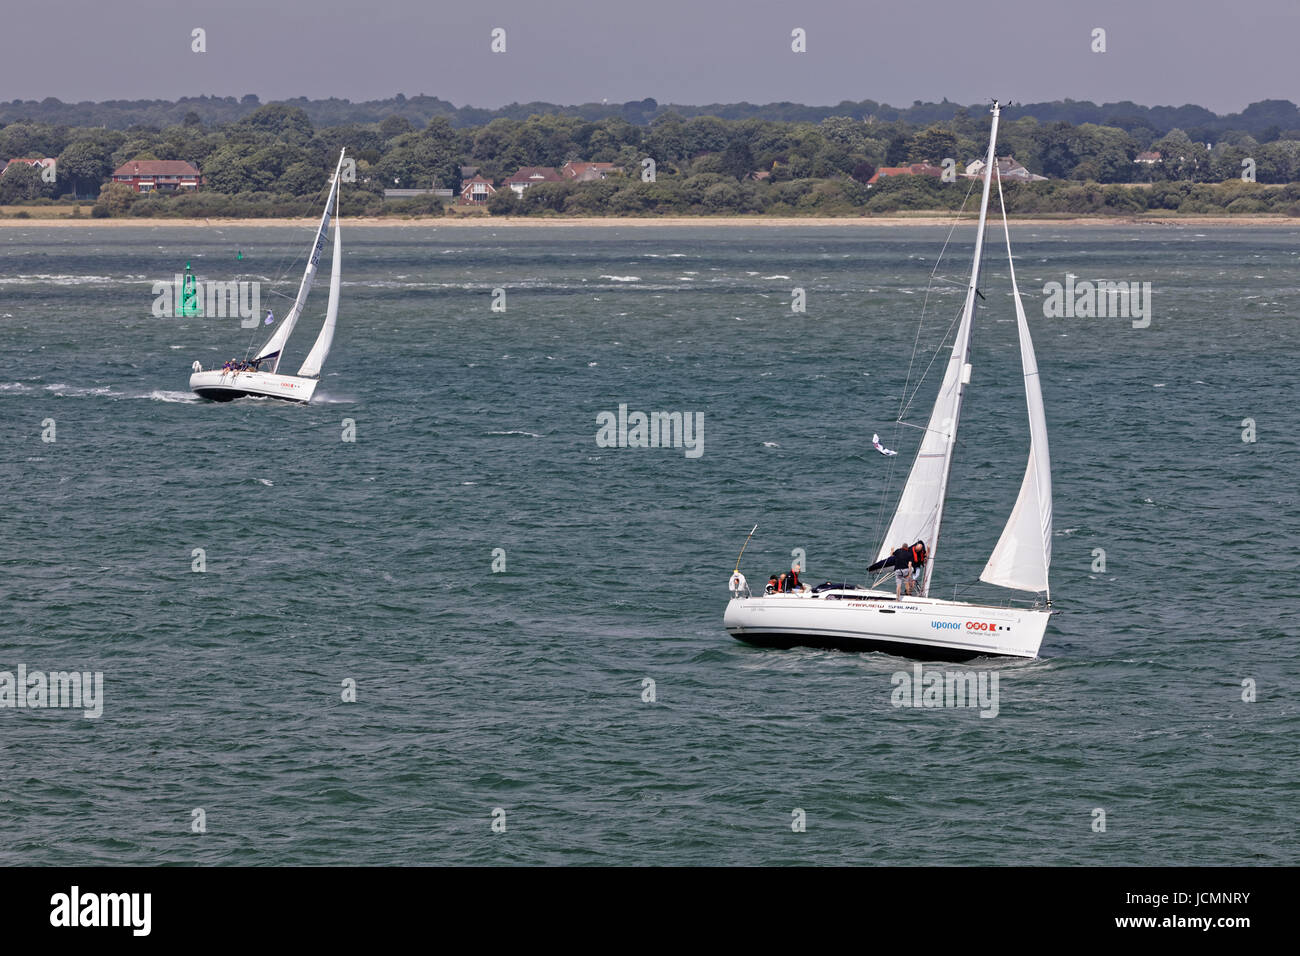 Farview Sailing Yacht Charter Company's Femme Fatal Oceanis 37 Yacht and crew in the Solent - Stock Image